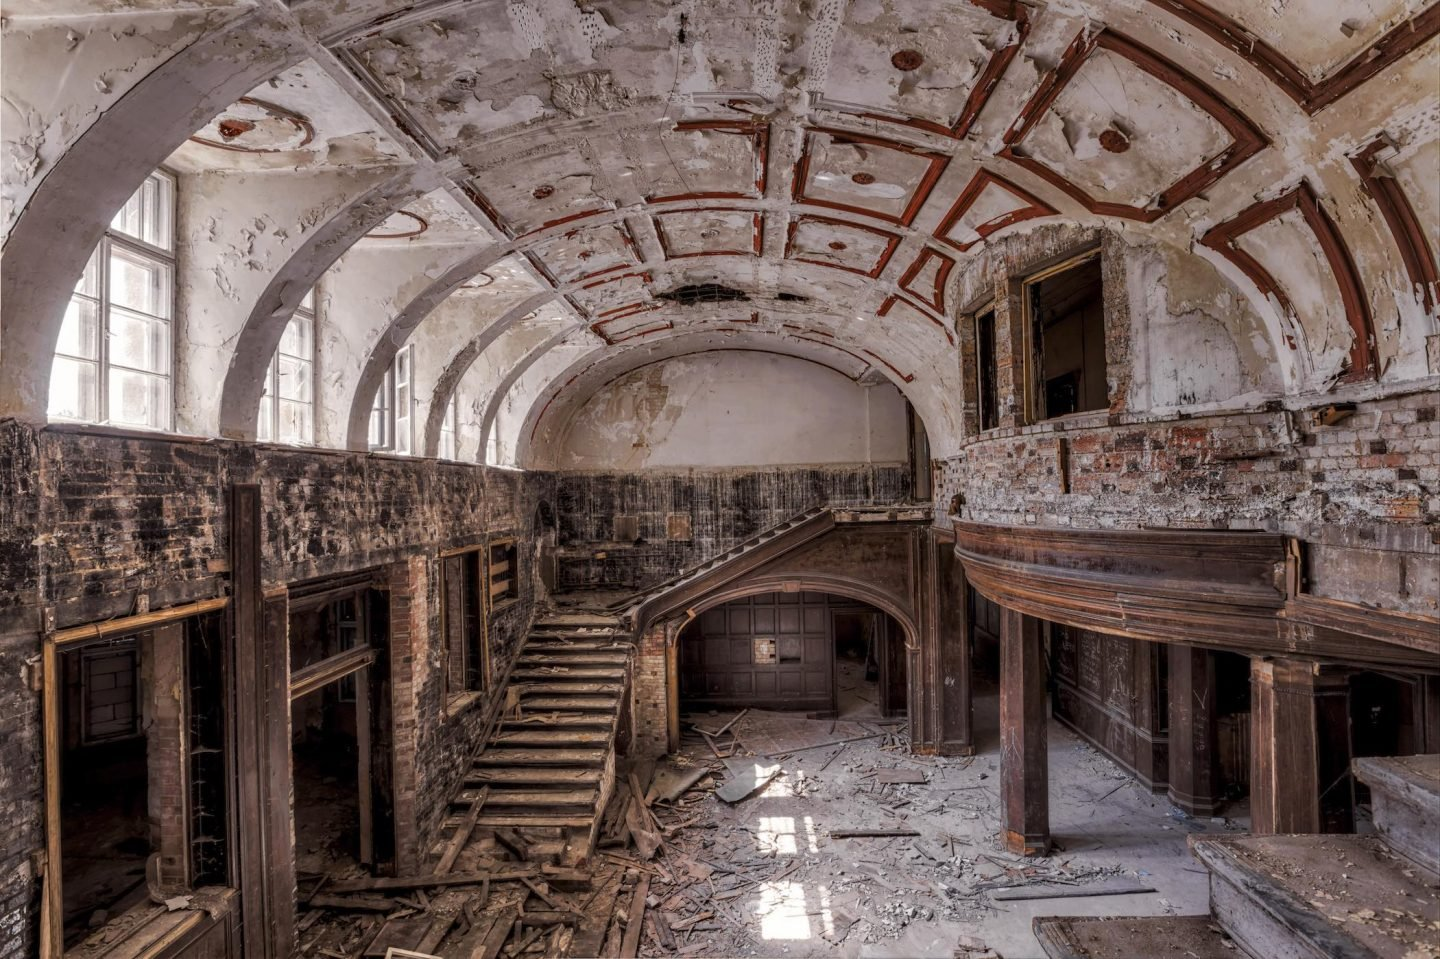 The Spirit Of Abandoned Spaces By Christian Richter